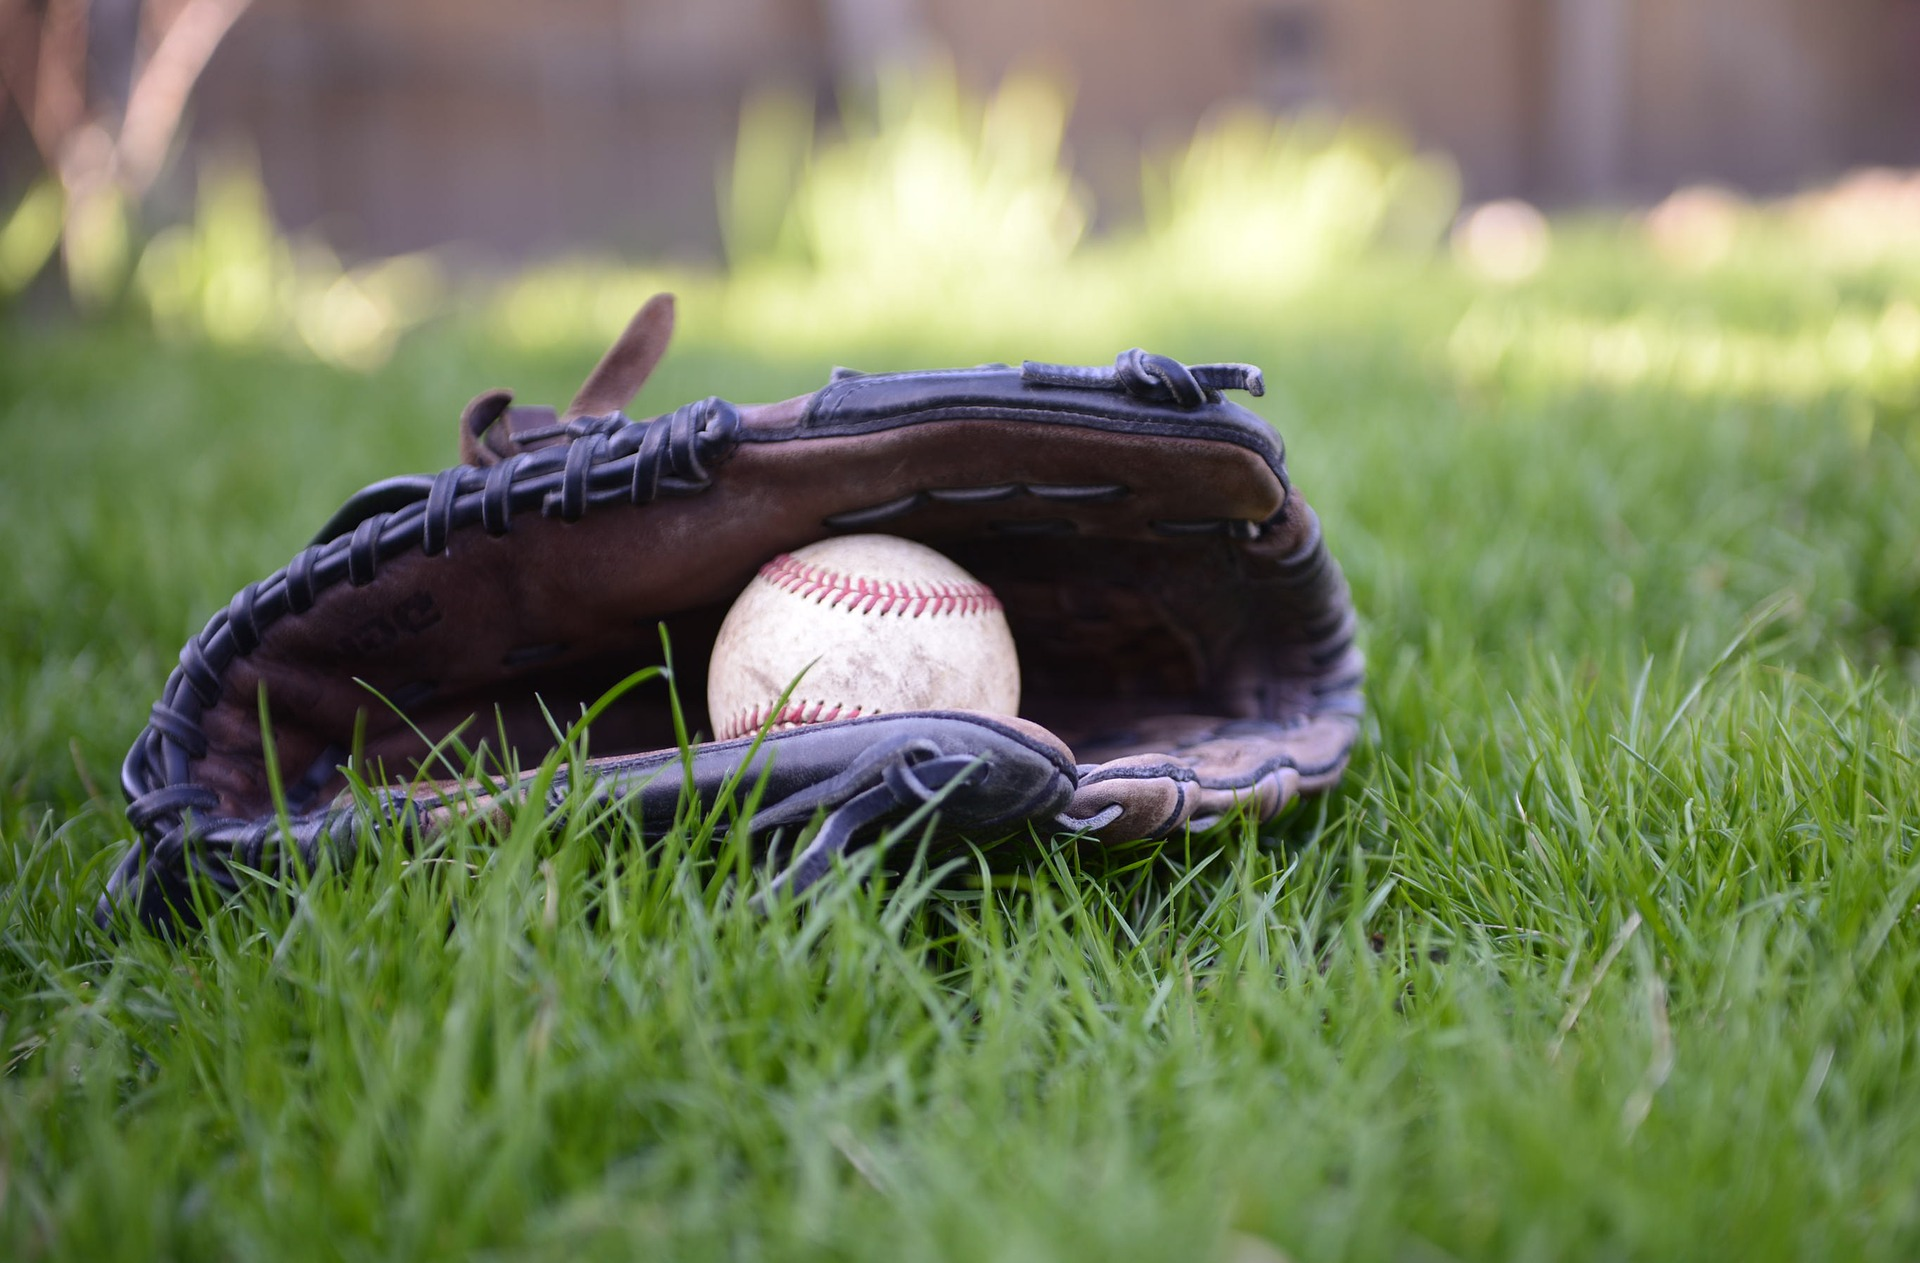 Baseball glove with a baseball inside  laying on the grass: Types of Baseball Gloves [MindfuseBaseball.com]